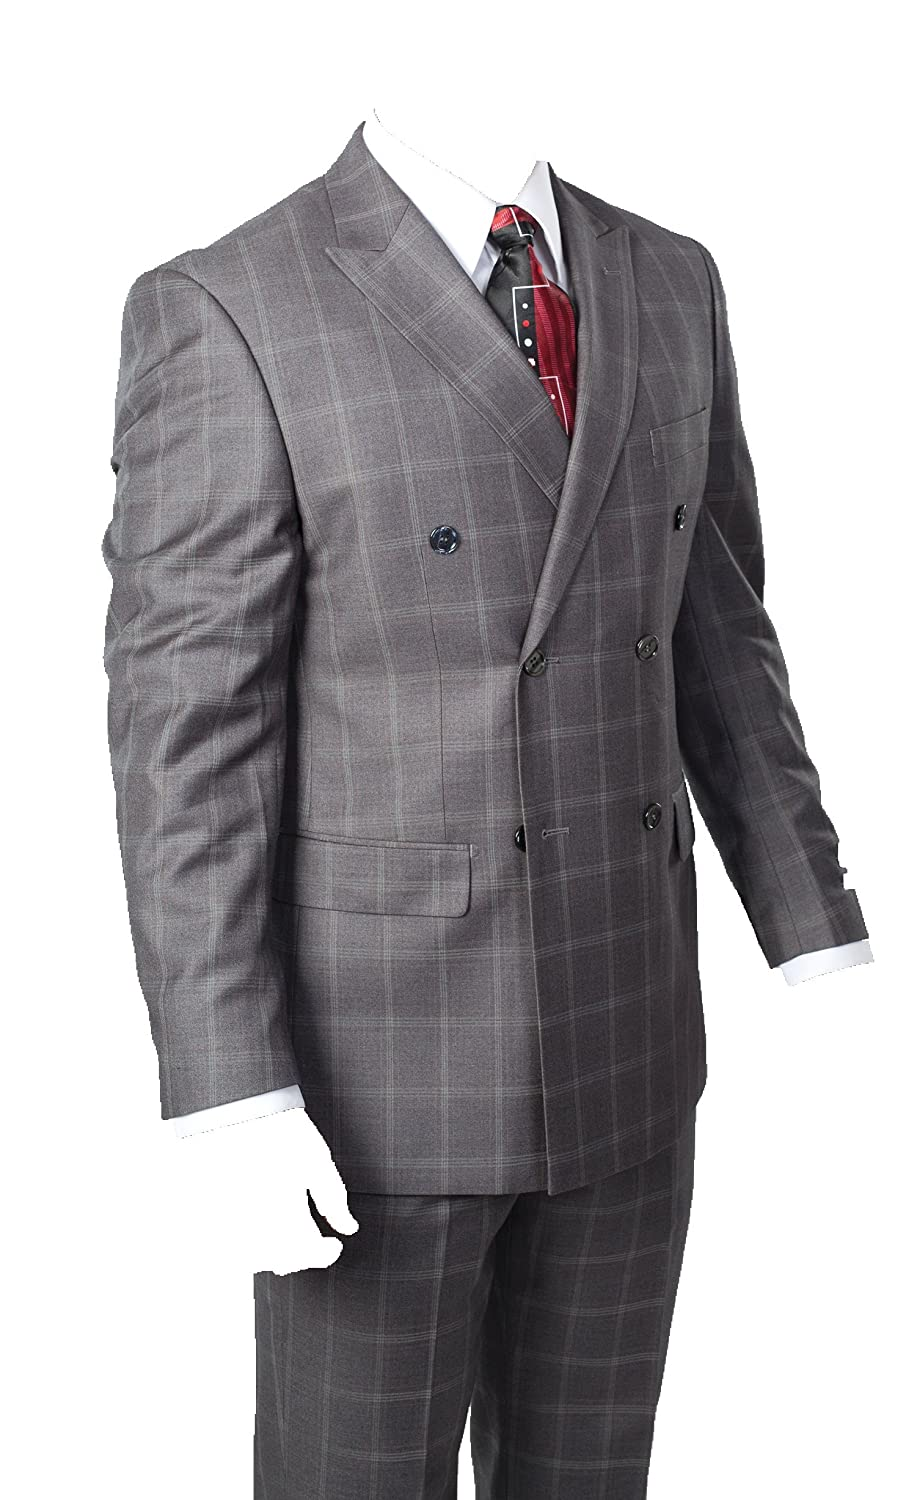 Men's Vintage Style Suits, Classic Suits Mens Two Piece Windowpane Plaid Suit (Grey) $119.00 AT vintagedancer.com